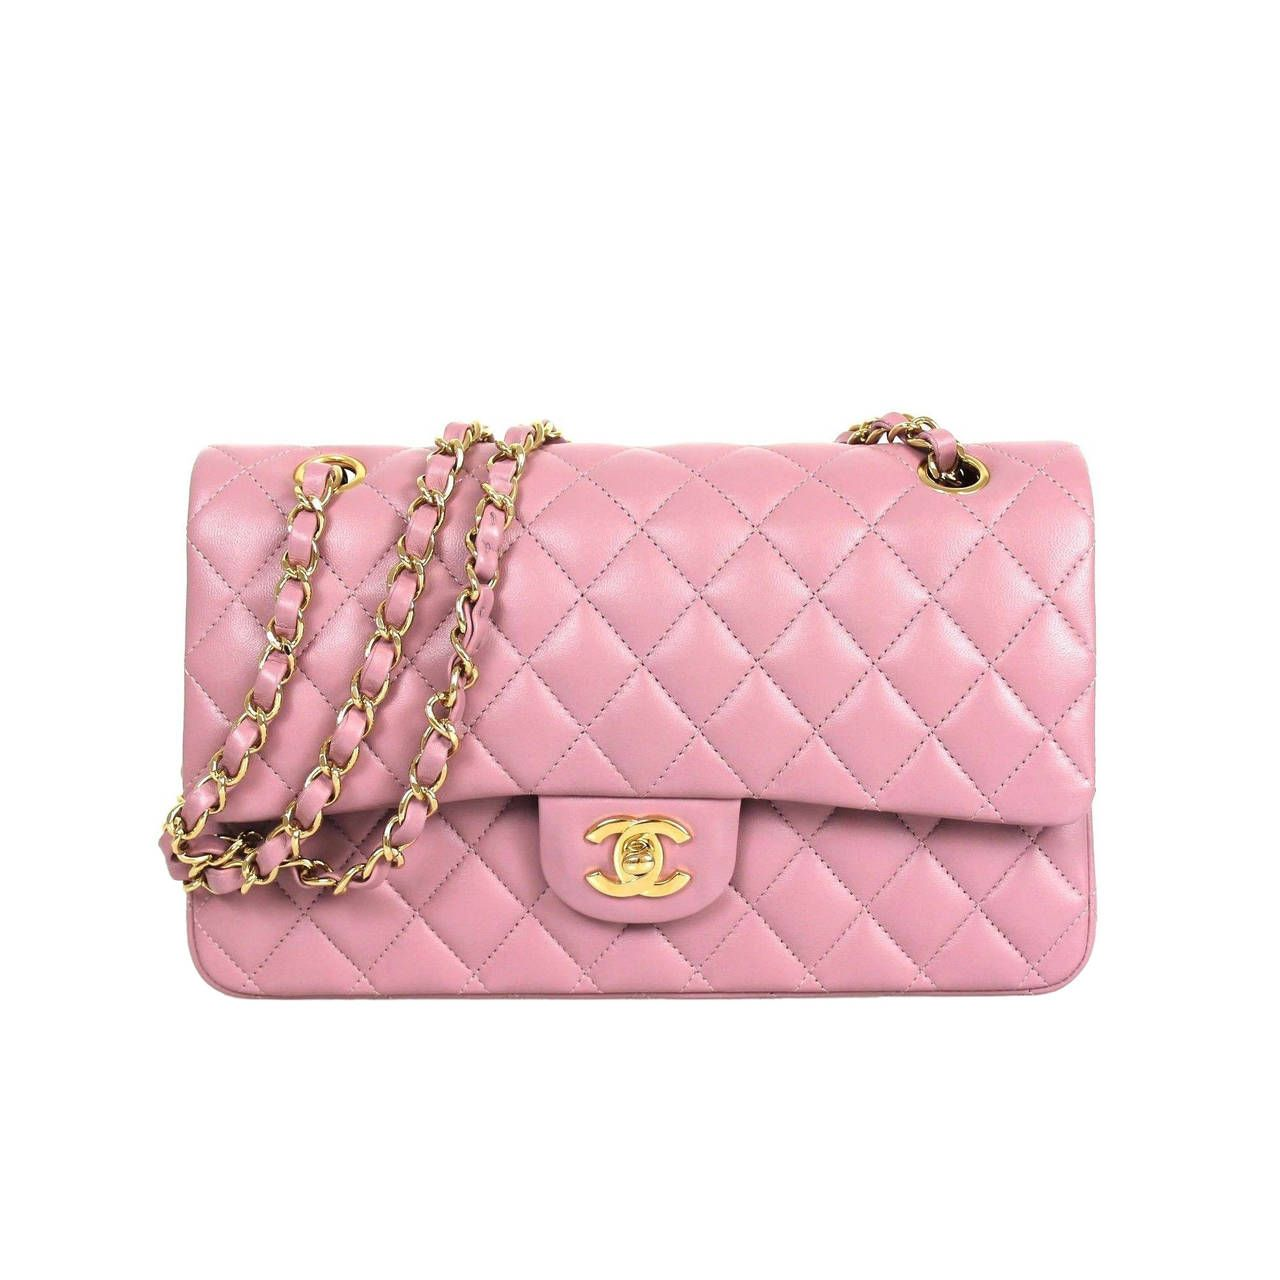 Leather quilted handbags and purses - Chanel Lilac Quilted Lambskin Leather Gold Hdw Medium Double Flap Shoulder Bag